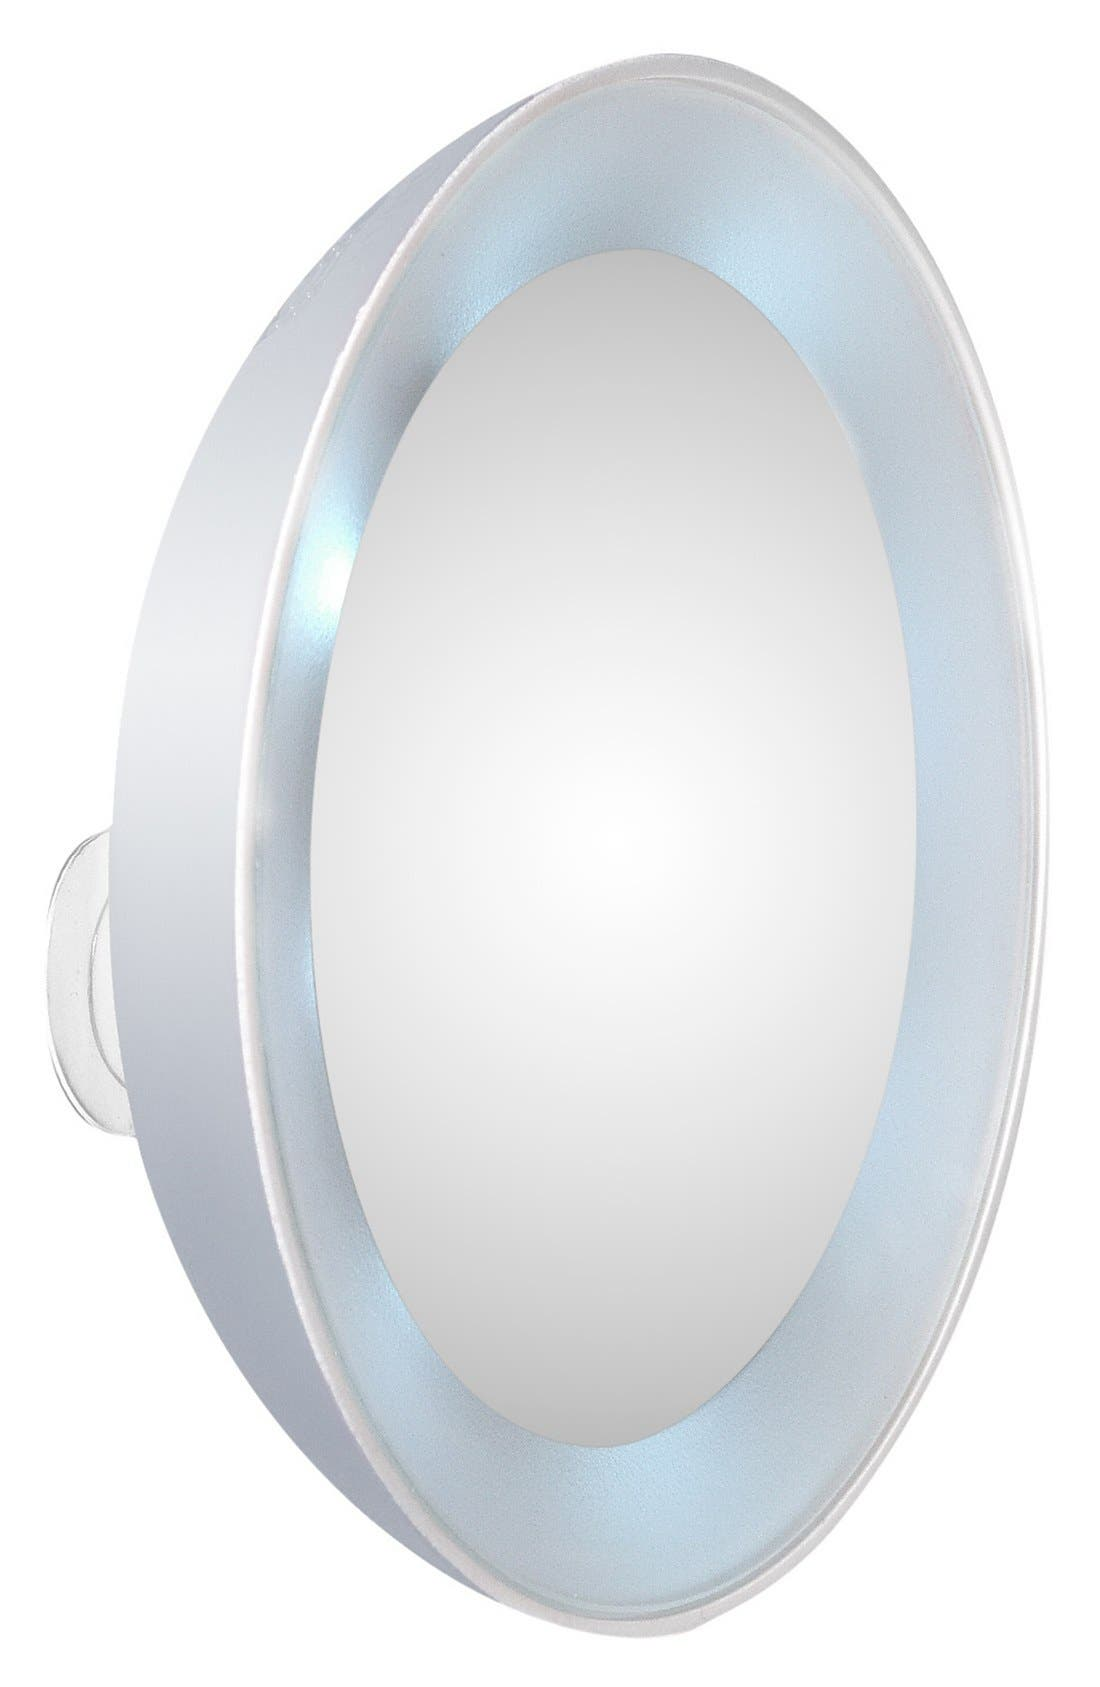 LED 15x Lighted Mirror,                             Main thumbnail 1, color,                             000